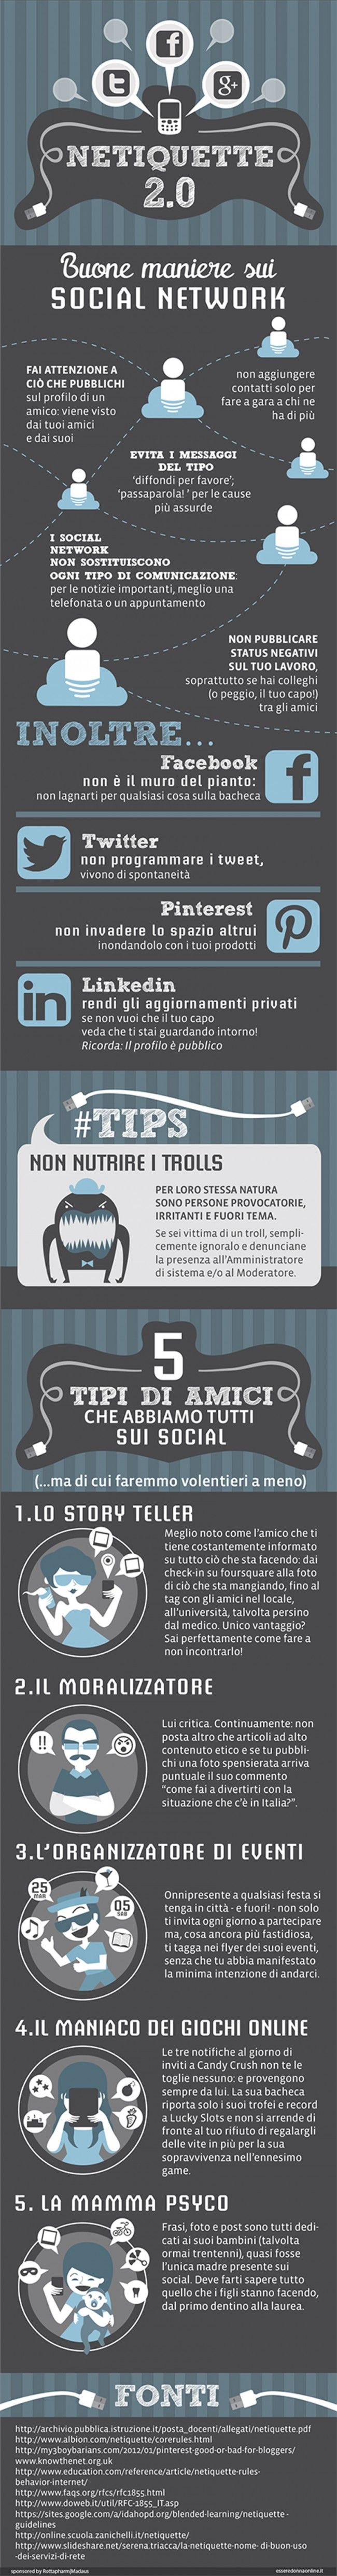 Netiquette 2.0: buone maniere sui social network - infographics designed for esseredonnaonline.it- illustrated by Alice Kle Borghi, kleland.com